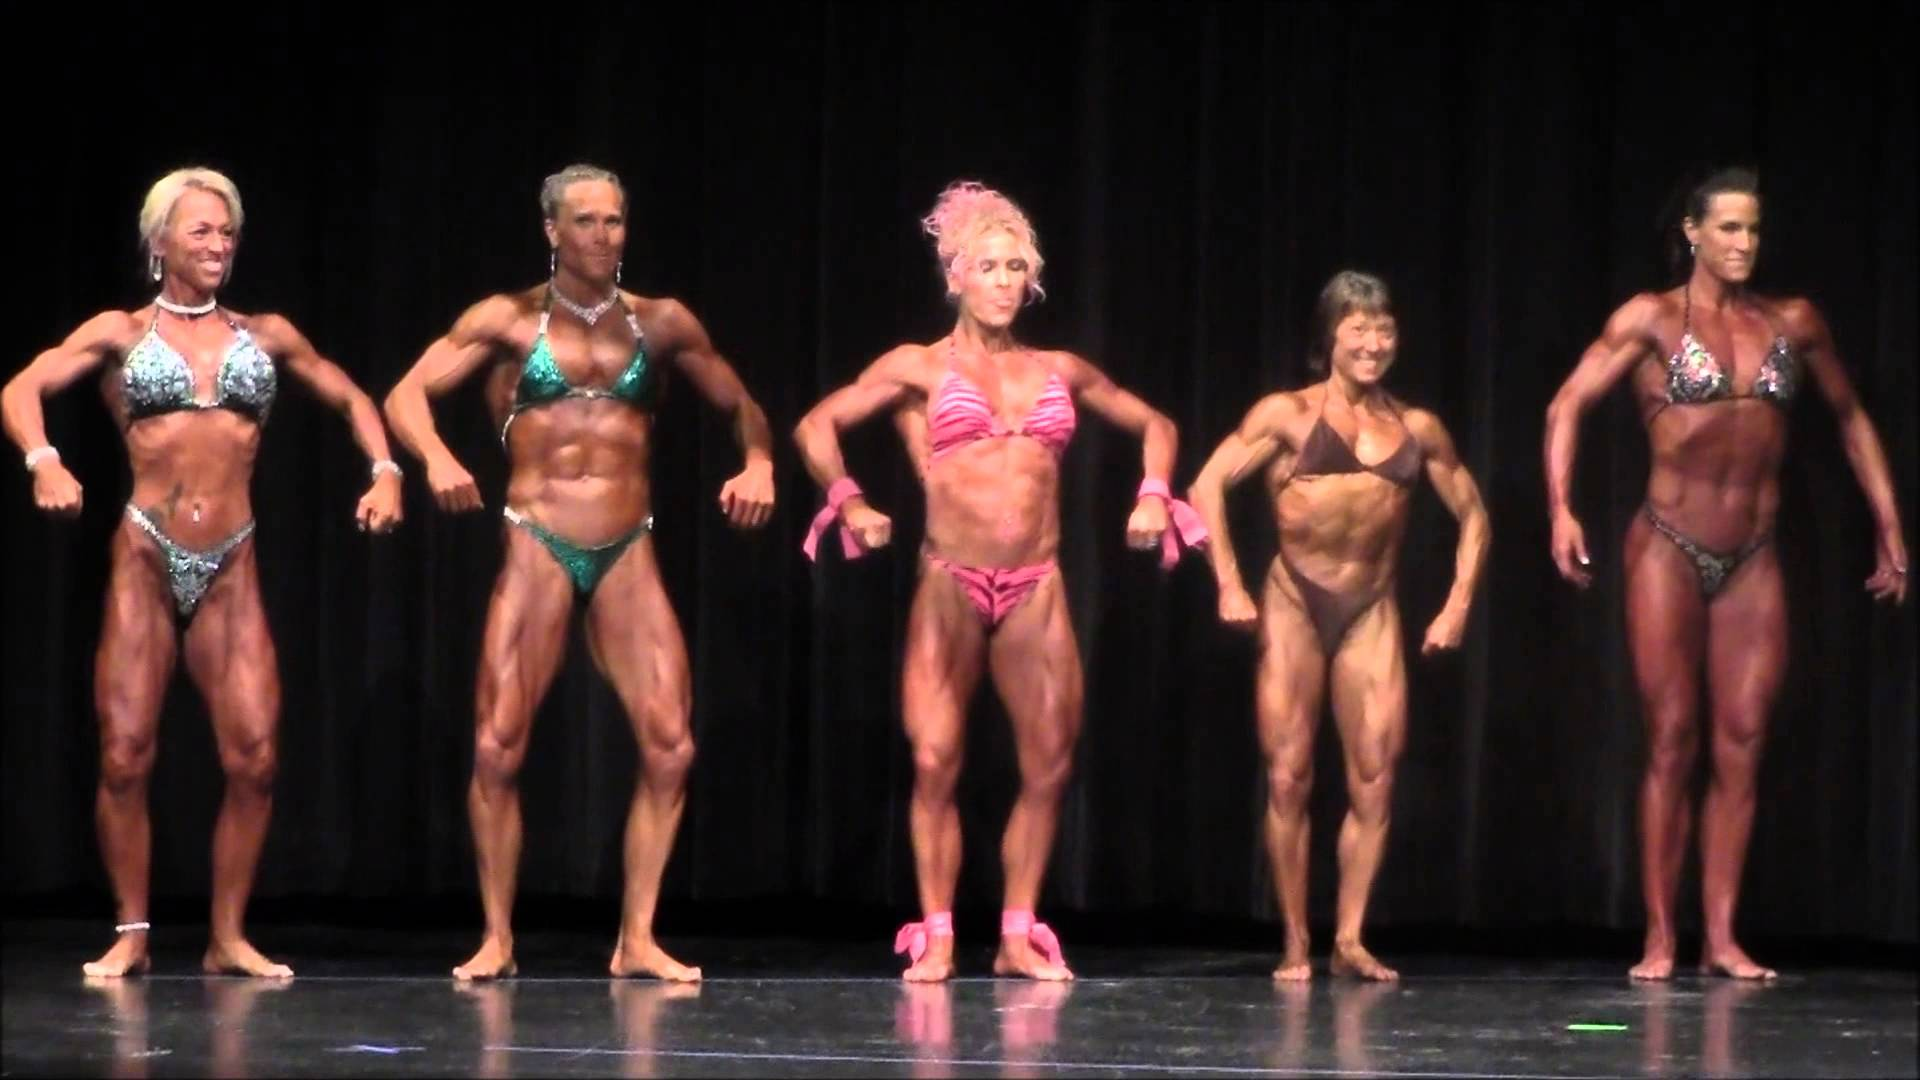 IFPA Pro North American 2013 – Top 5 Female Pro Bodybuilders